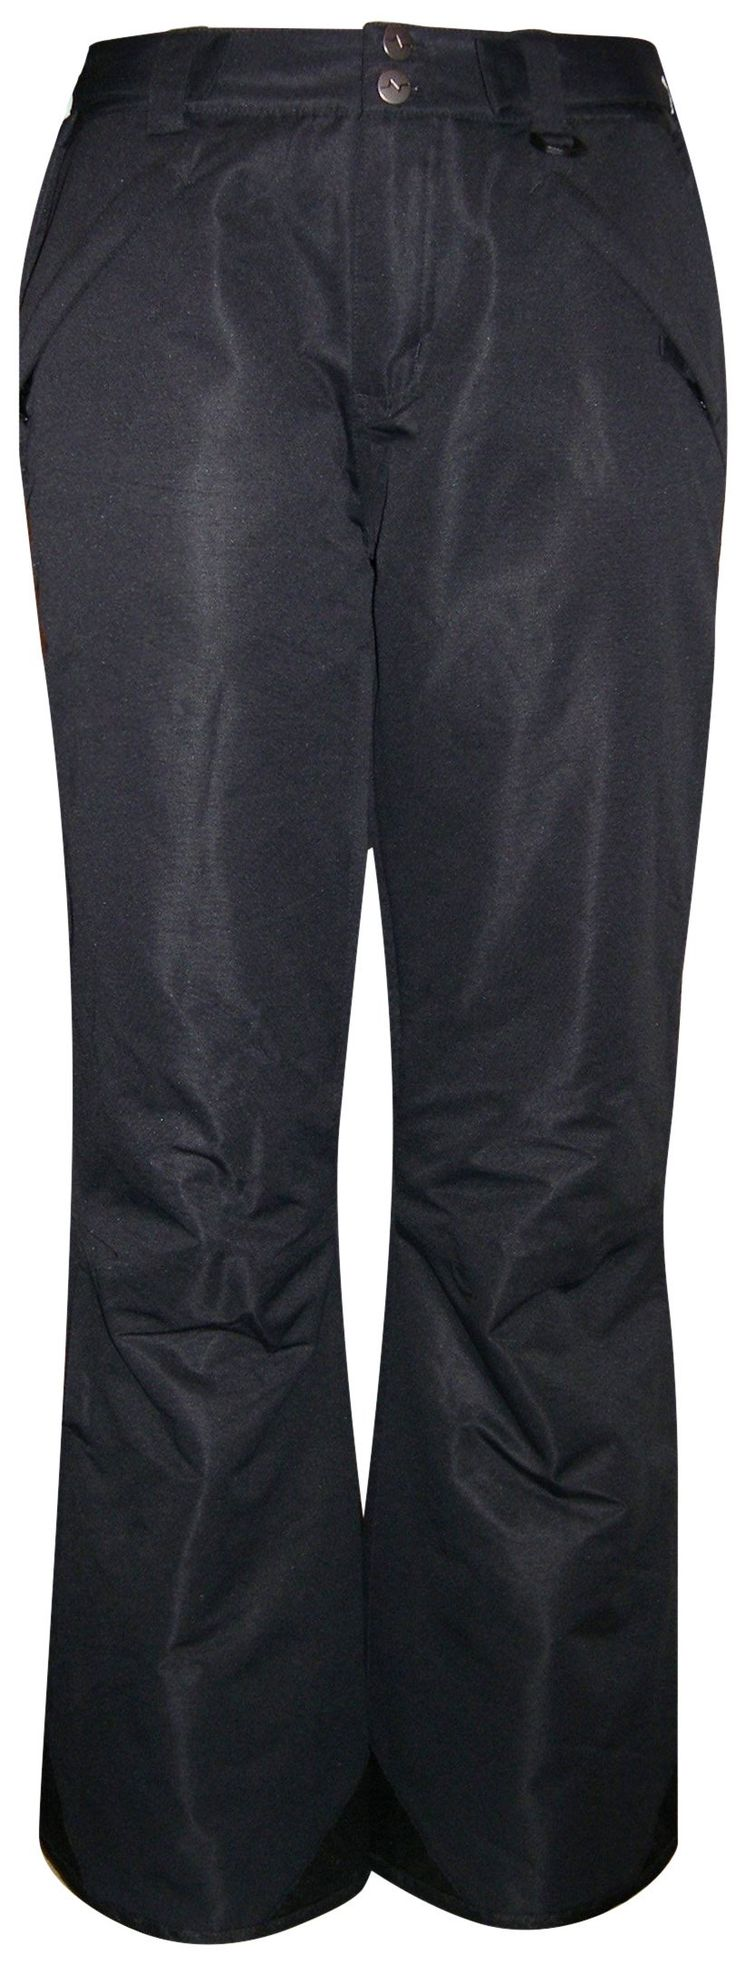 Pulse Women's Technical Insulated Snow Ski Pants (X-Large ...